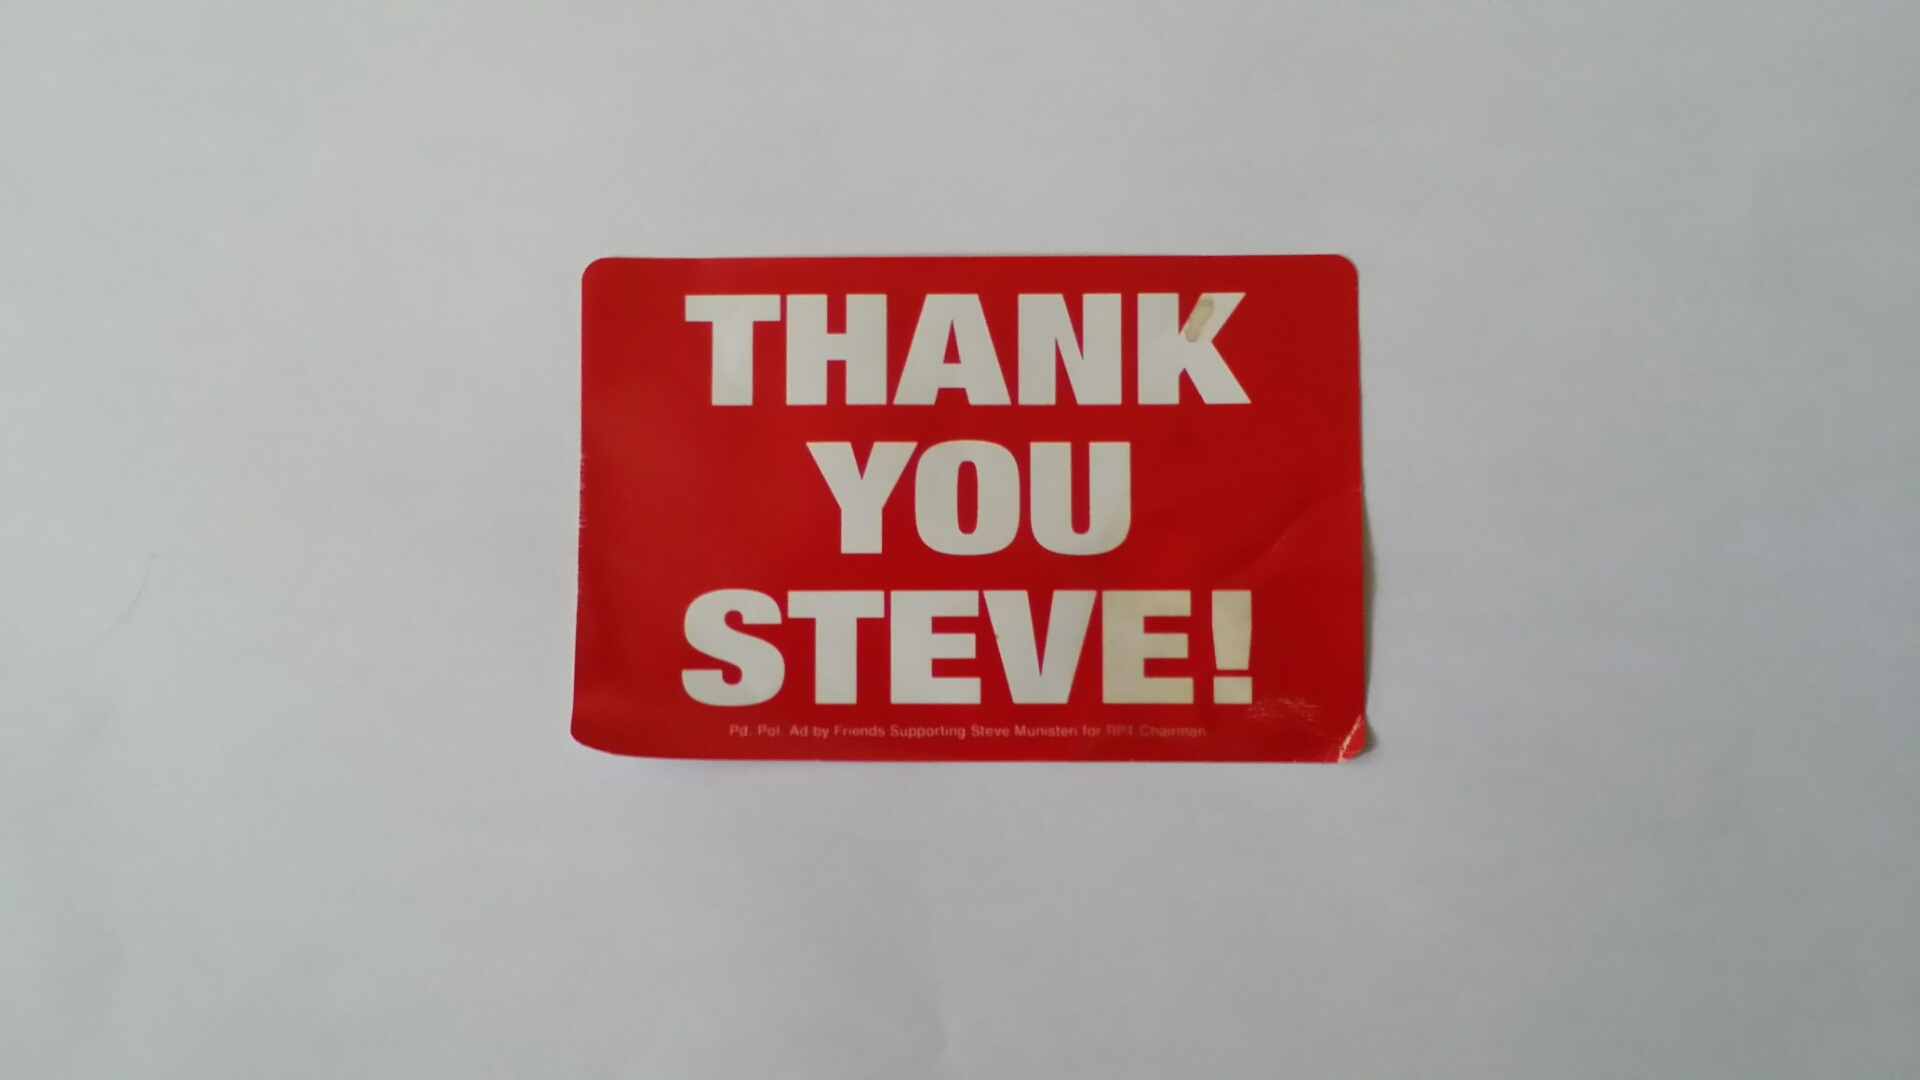 VFV--Texas Republican State Converntion 2014-06-10 08.16.21Steve sticker